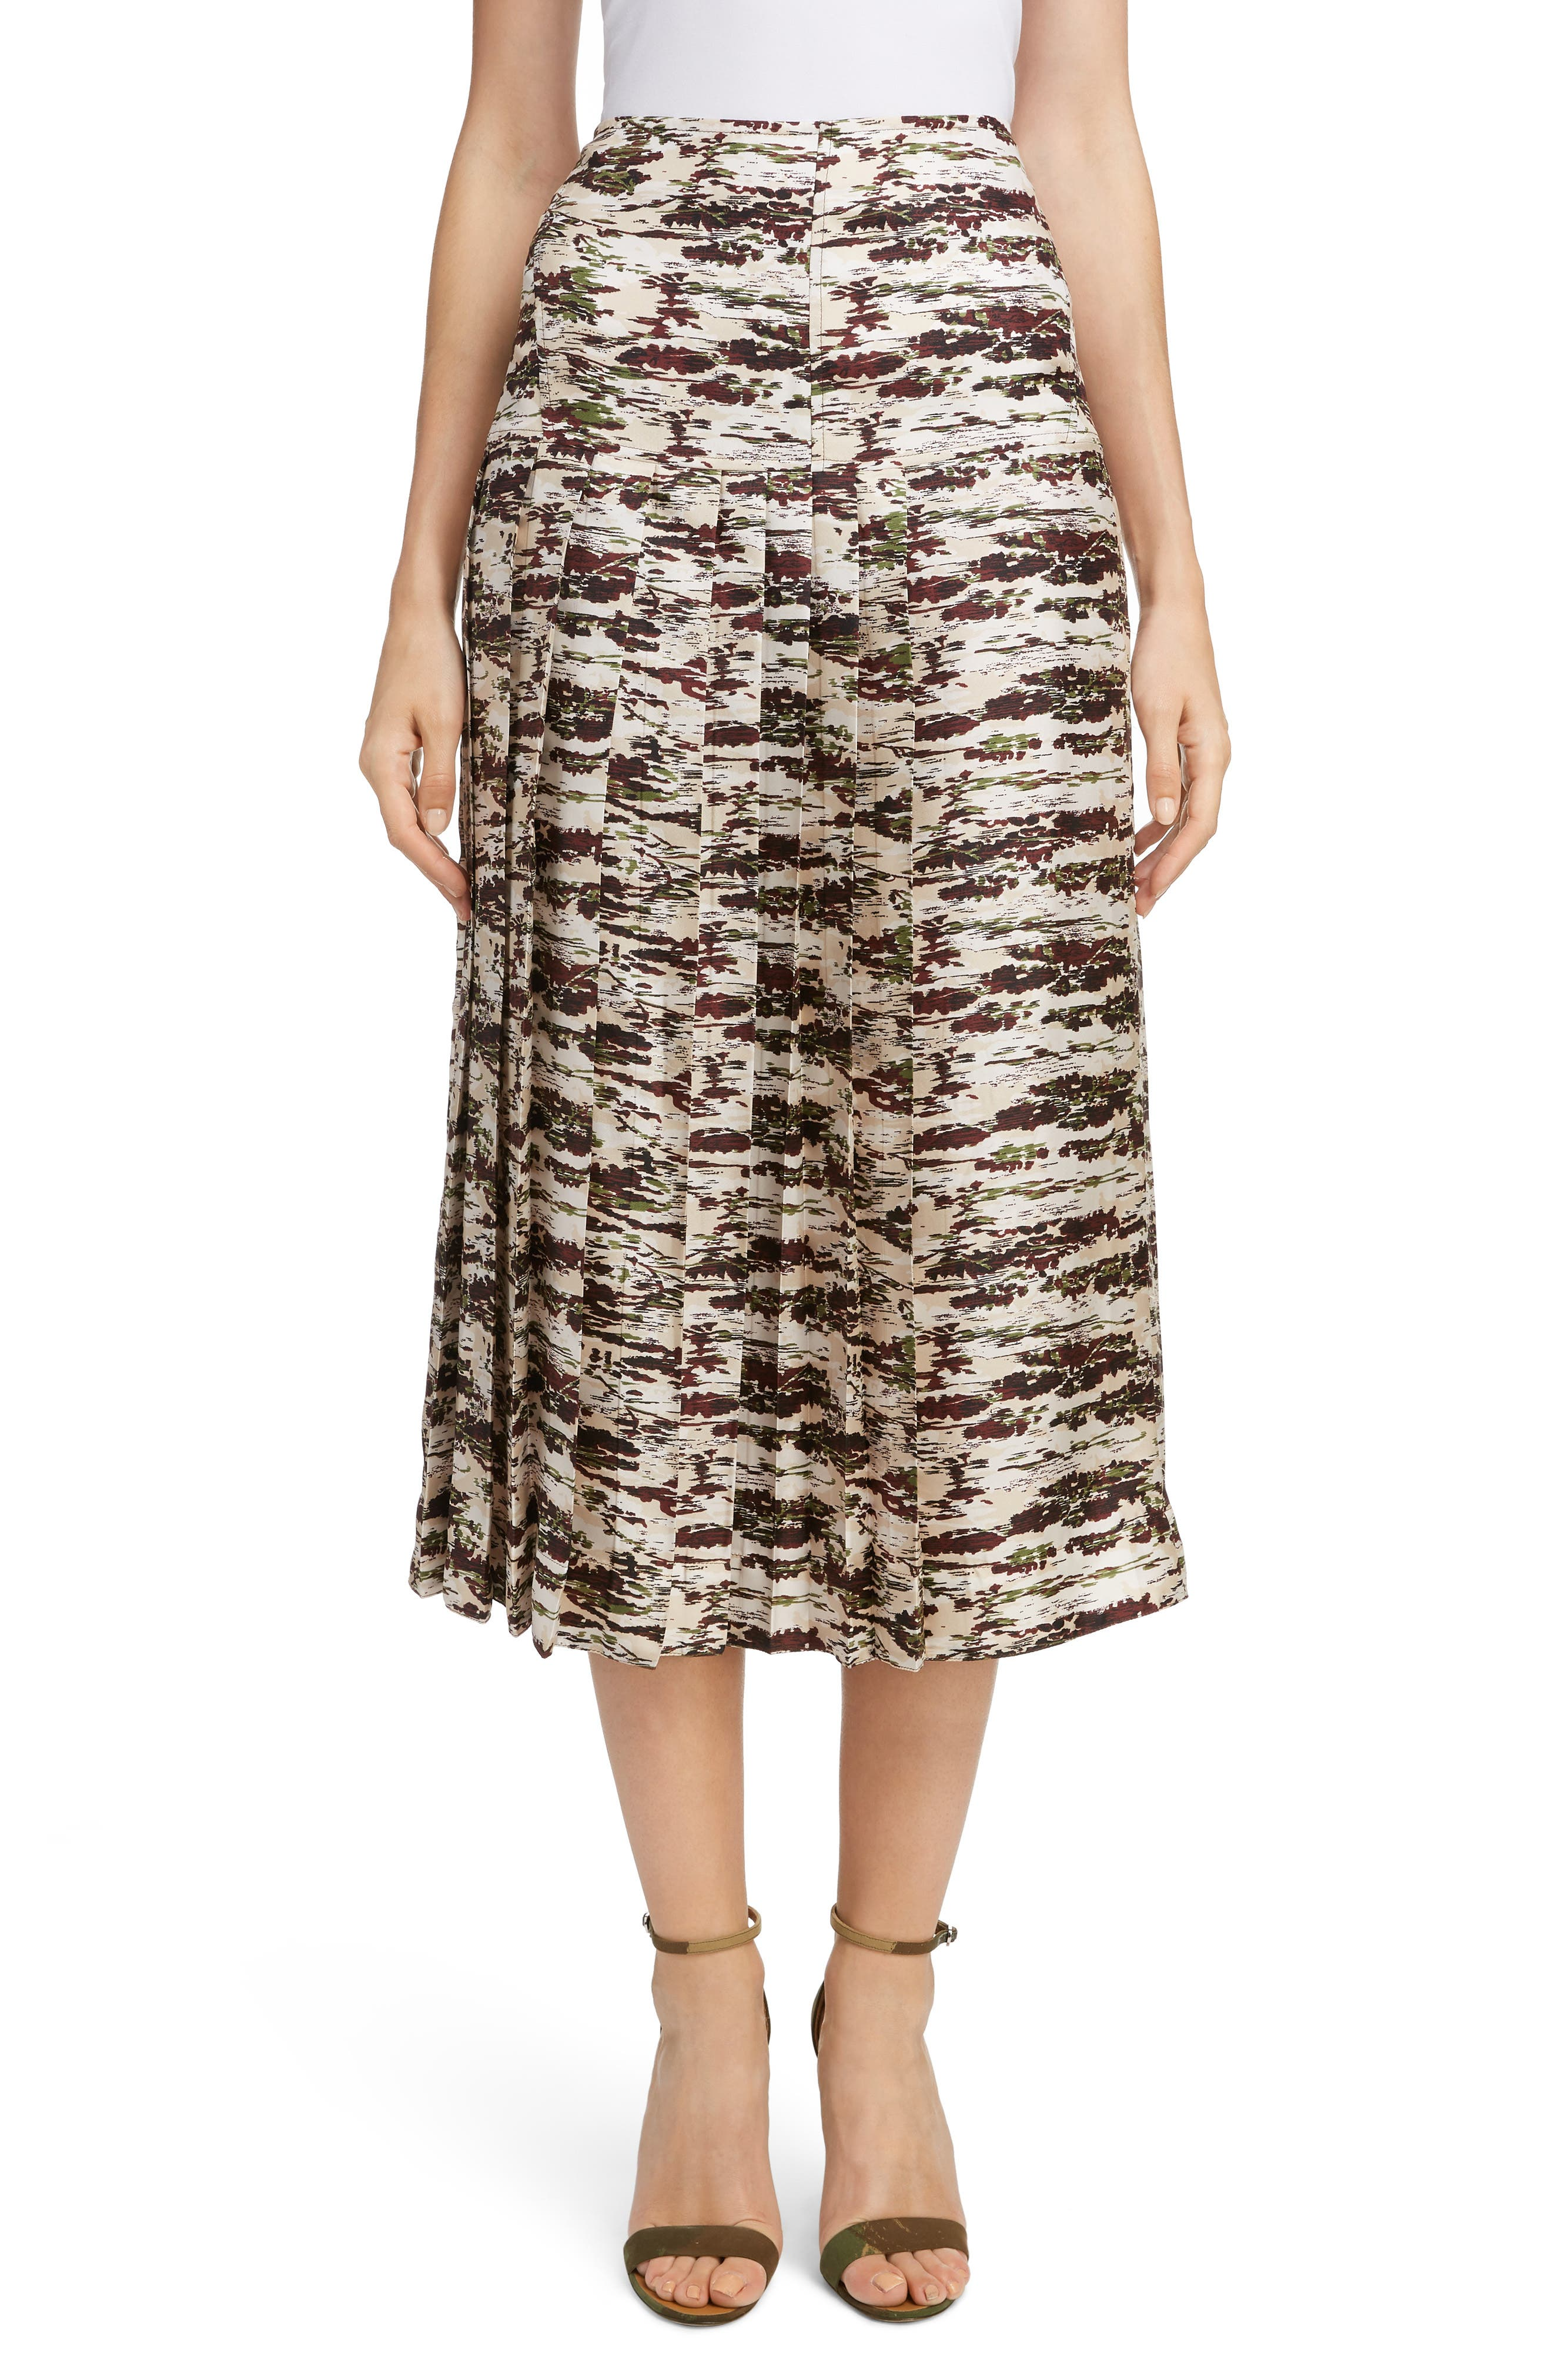 VICTORIA BECKHAM Pleated Silk Midi Skirt, Main, color, BORDEAUX-GREEN